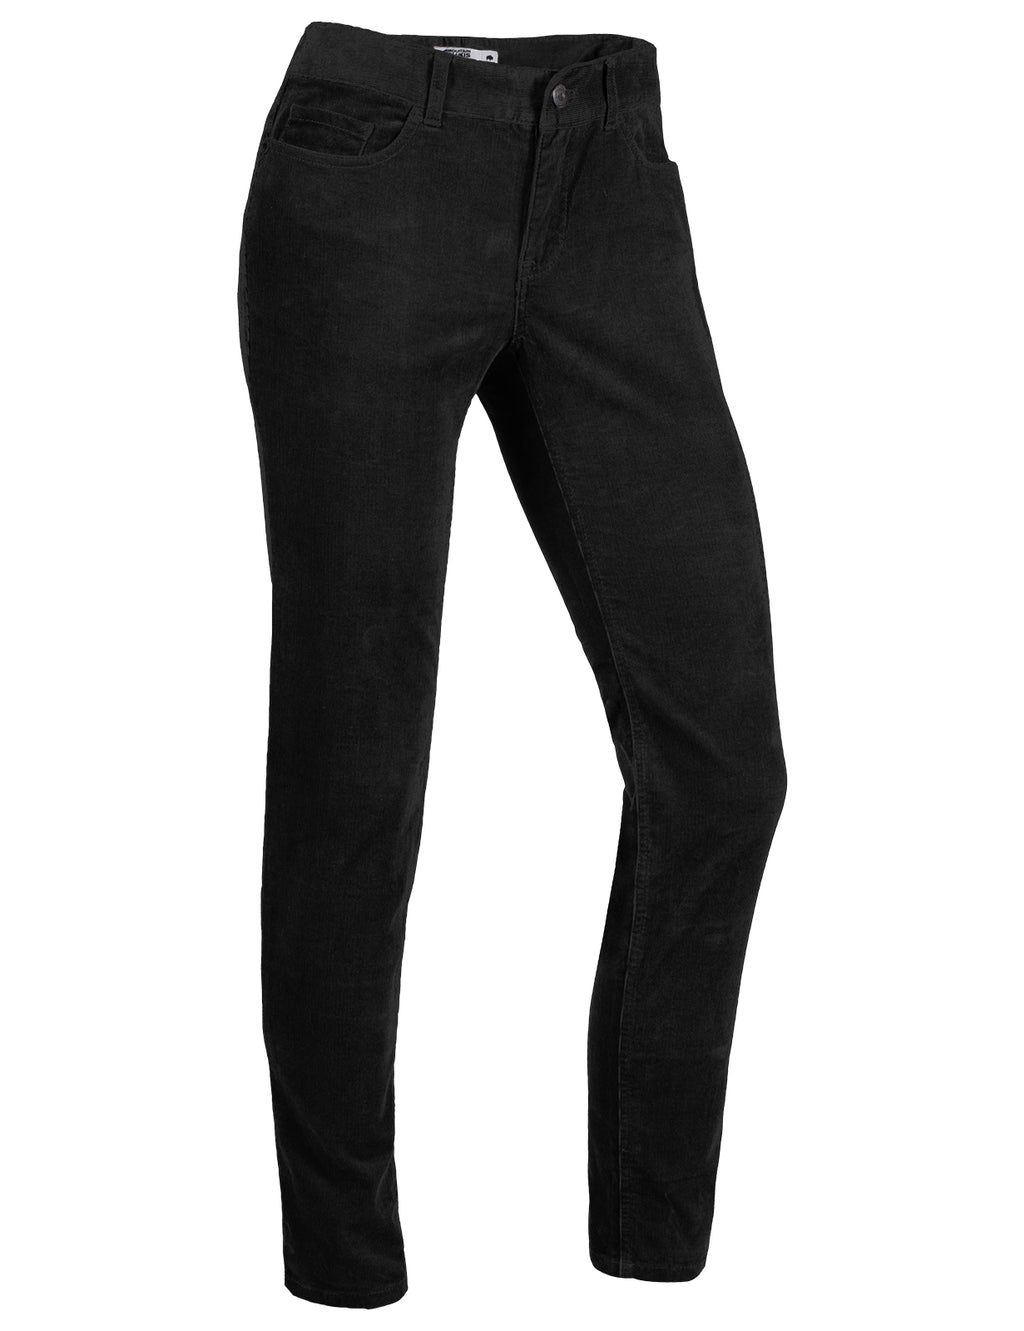 Women's Crest Cord Pant | Slim Fit / Black